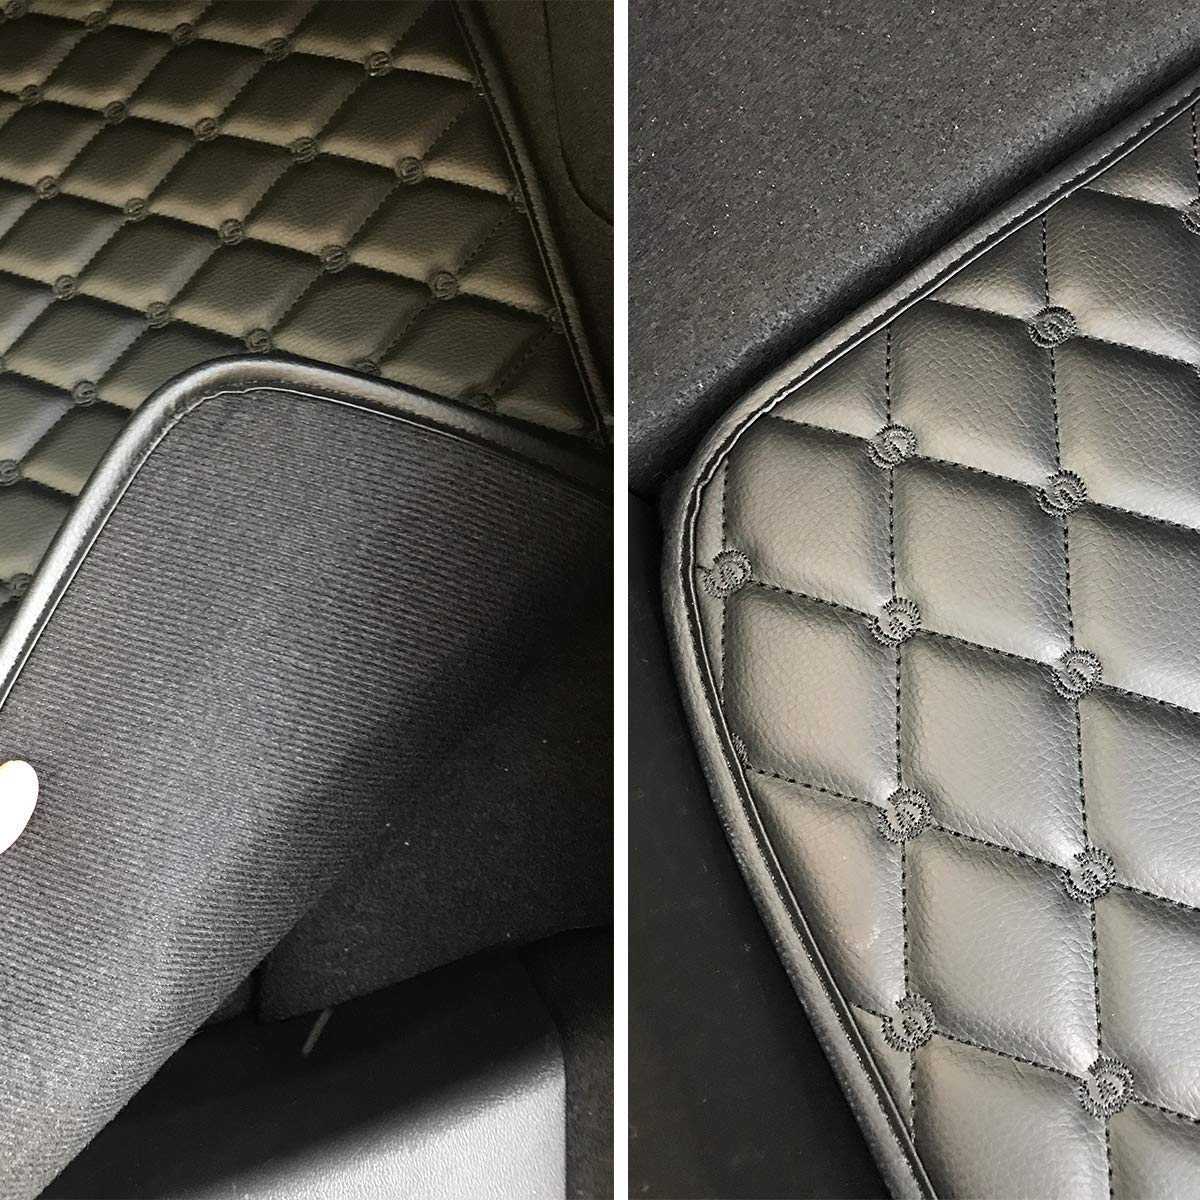 Highest Quality Durable Rubber Fireproof Classic Loop Car Carpet 3 pieces//set Car Floor Mats for Model 3 All Weather Rubber